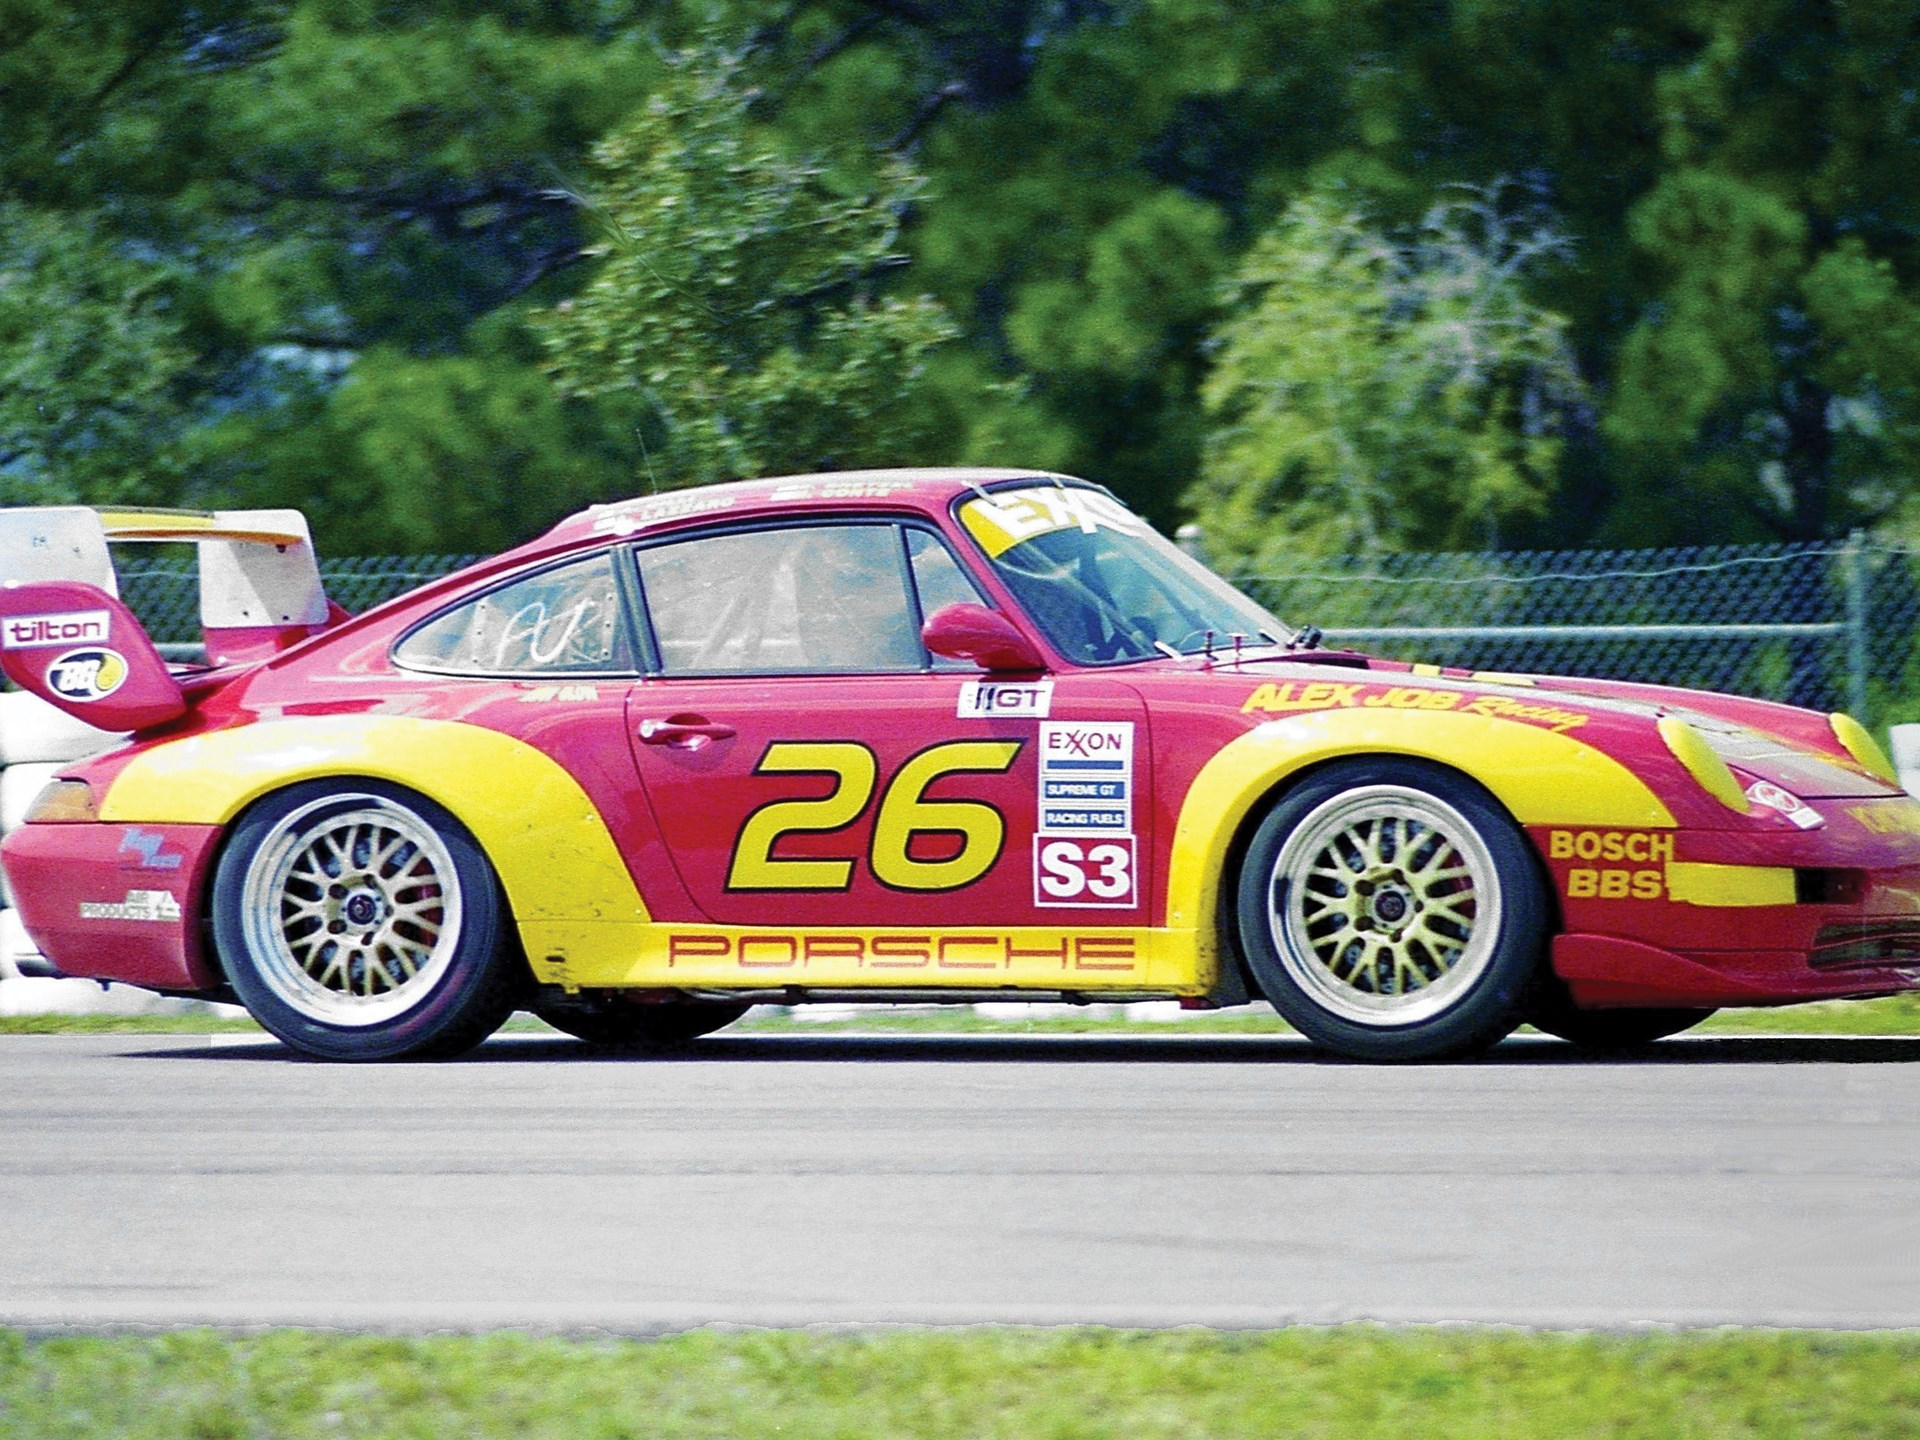 The Carrera RS as seen in 1997 at the 12 Hours of Sebring, where it finished 17th in class.